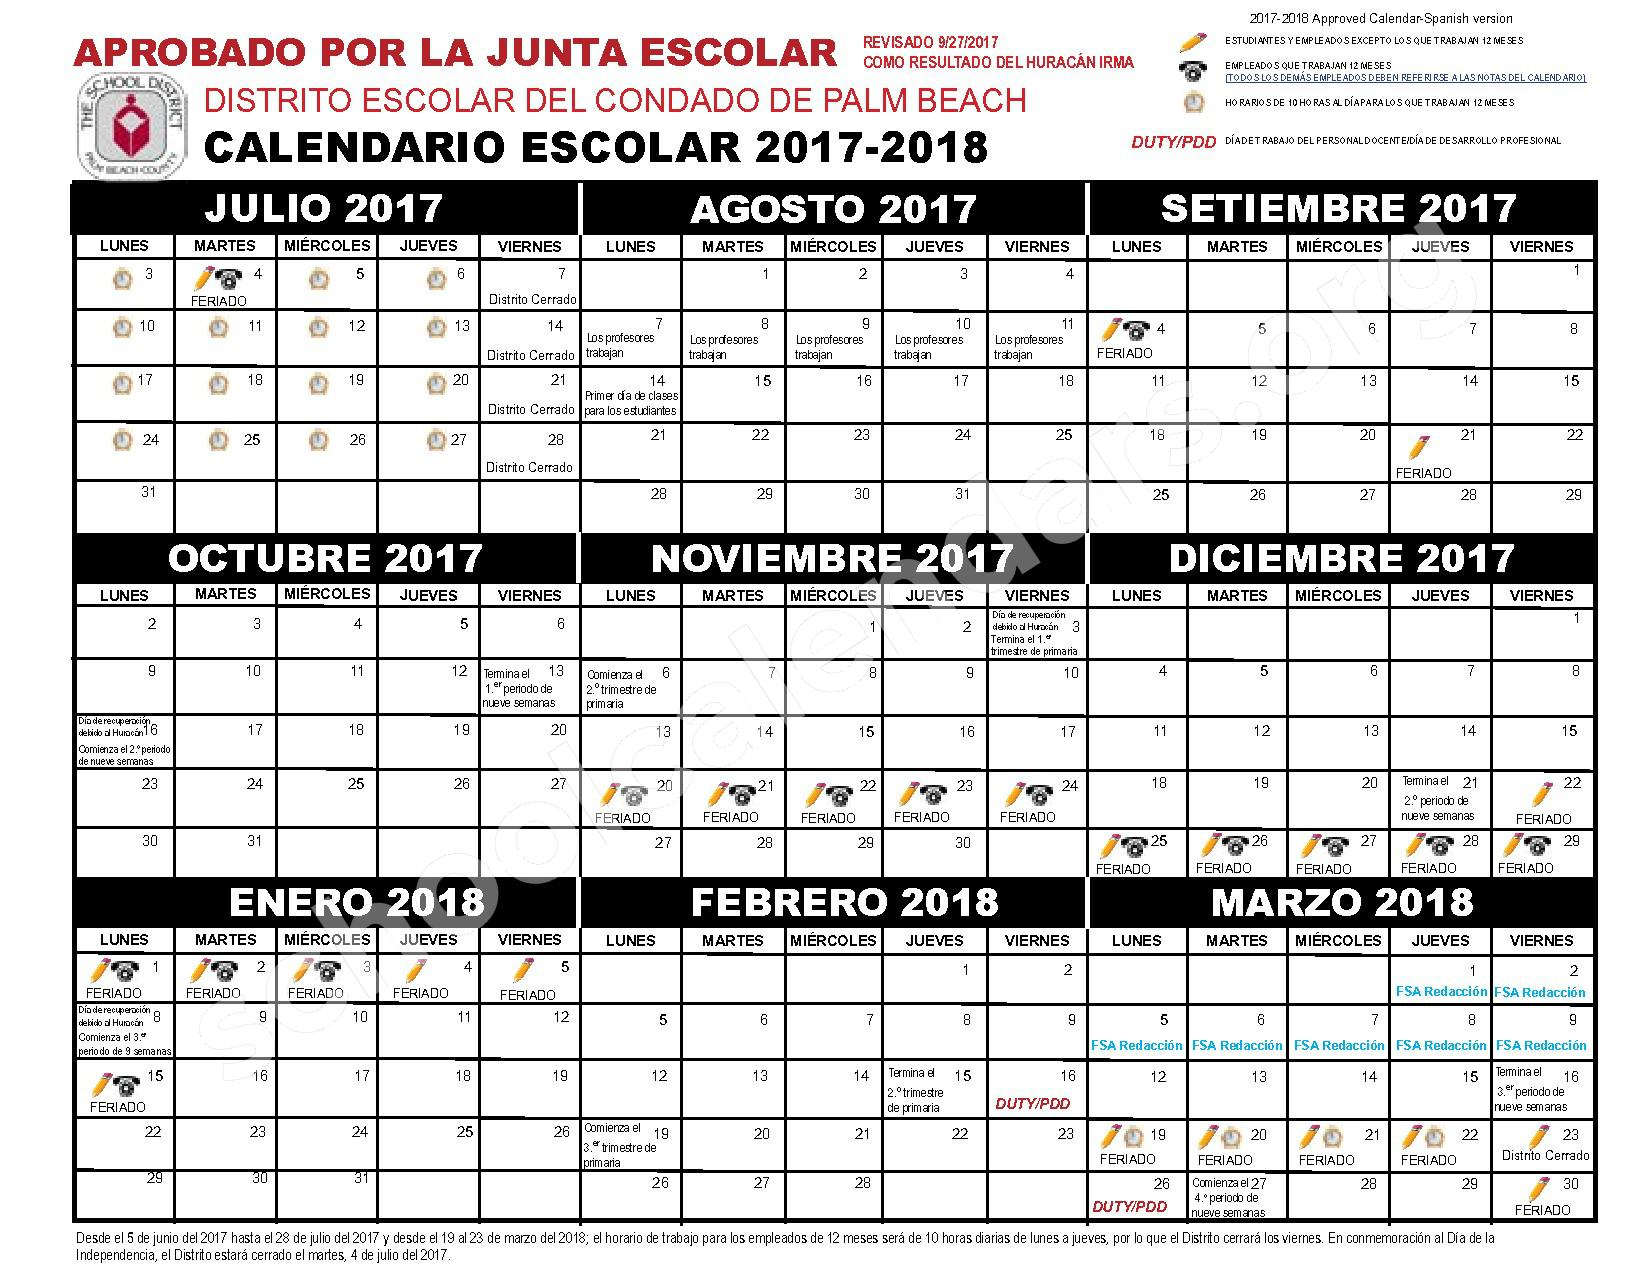 2017 - 2018 Calendario Escolar – Boynton Beach Community Adult – page 1